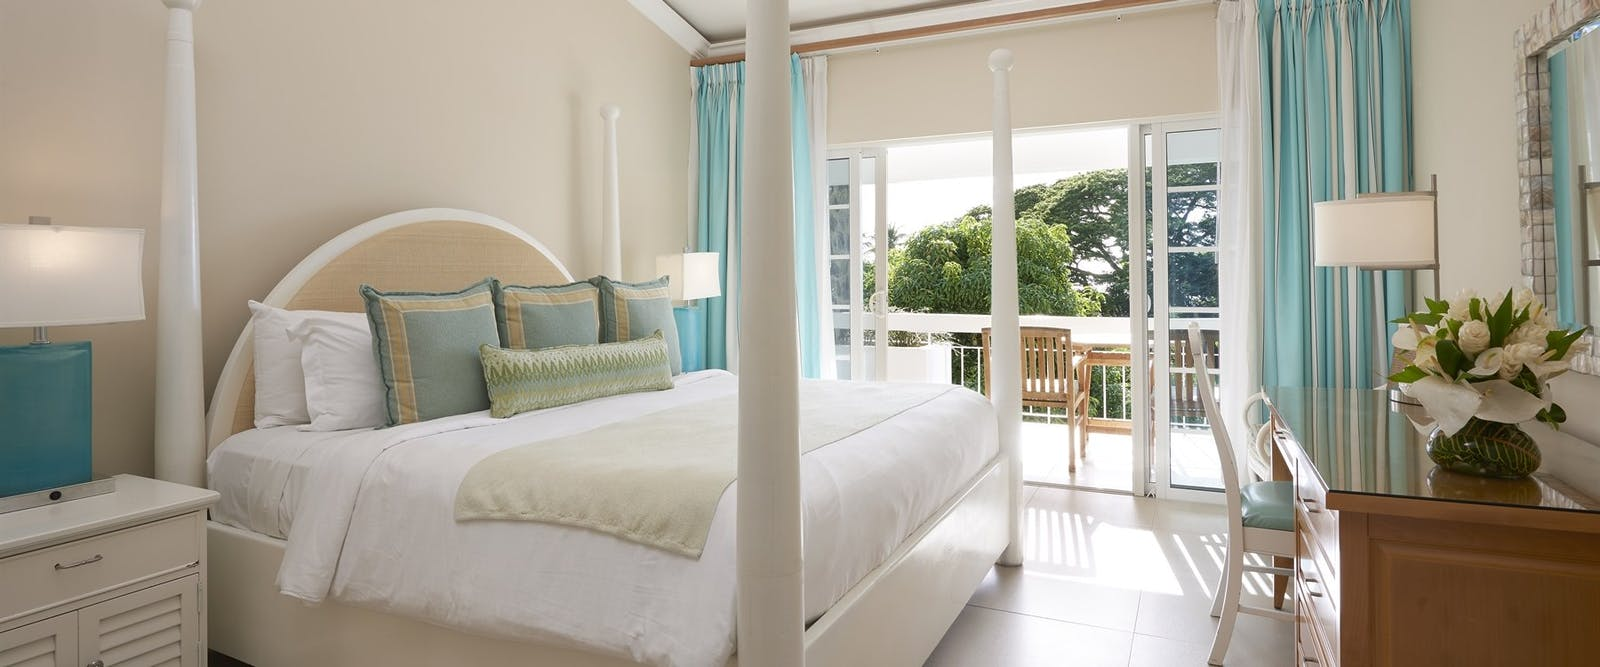 Premium Bedroom with Garden View at Rendezvous, St Lucia